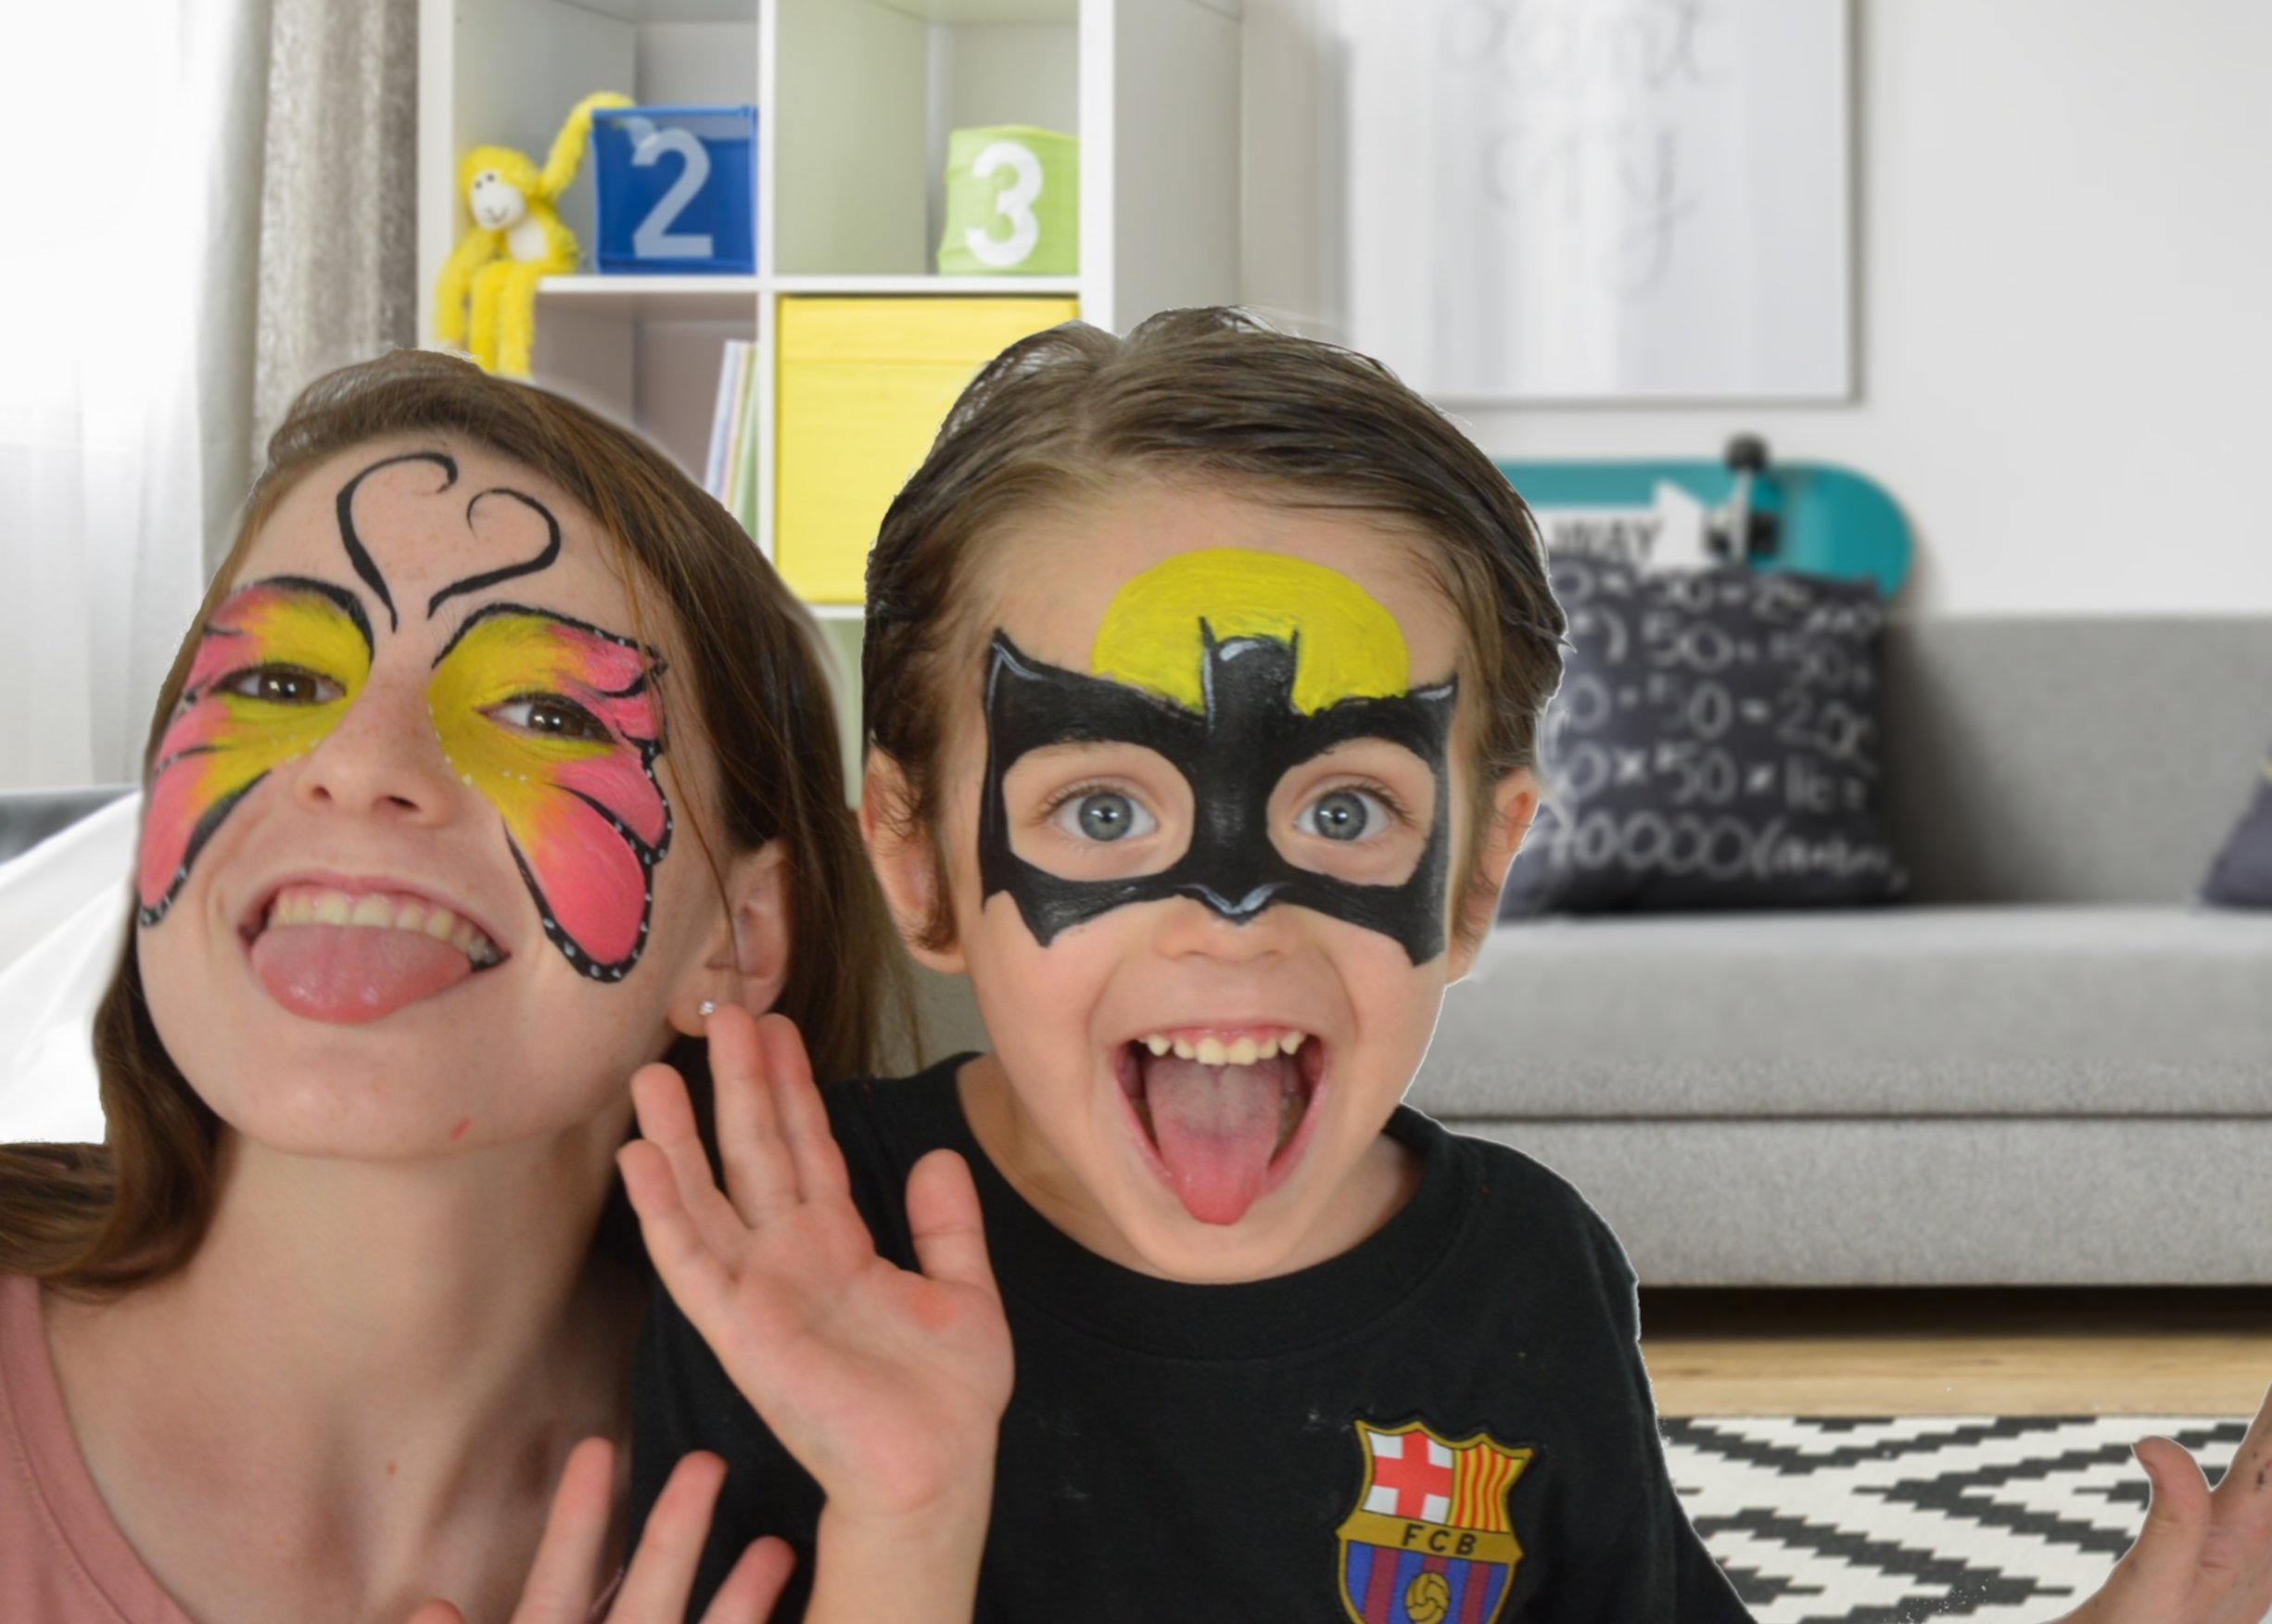 Face painting kits. Free 40 Stencils Included. Use for Body Painting,Birthday, Halloween or Kids Makeup Parties.Our Face Paint Kit Contain Palette 8 Colors, Glitter,Brushes & Sponges